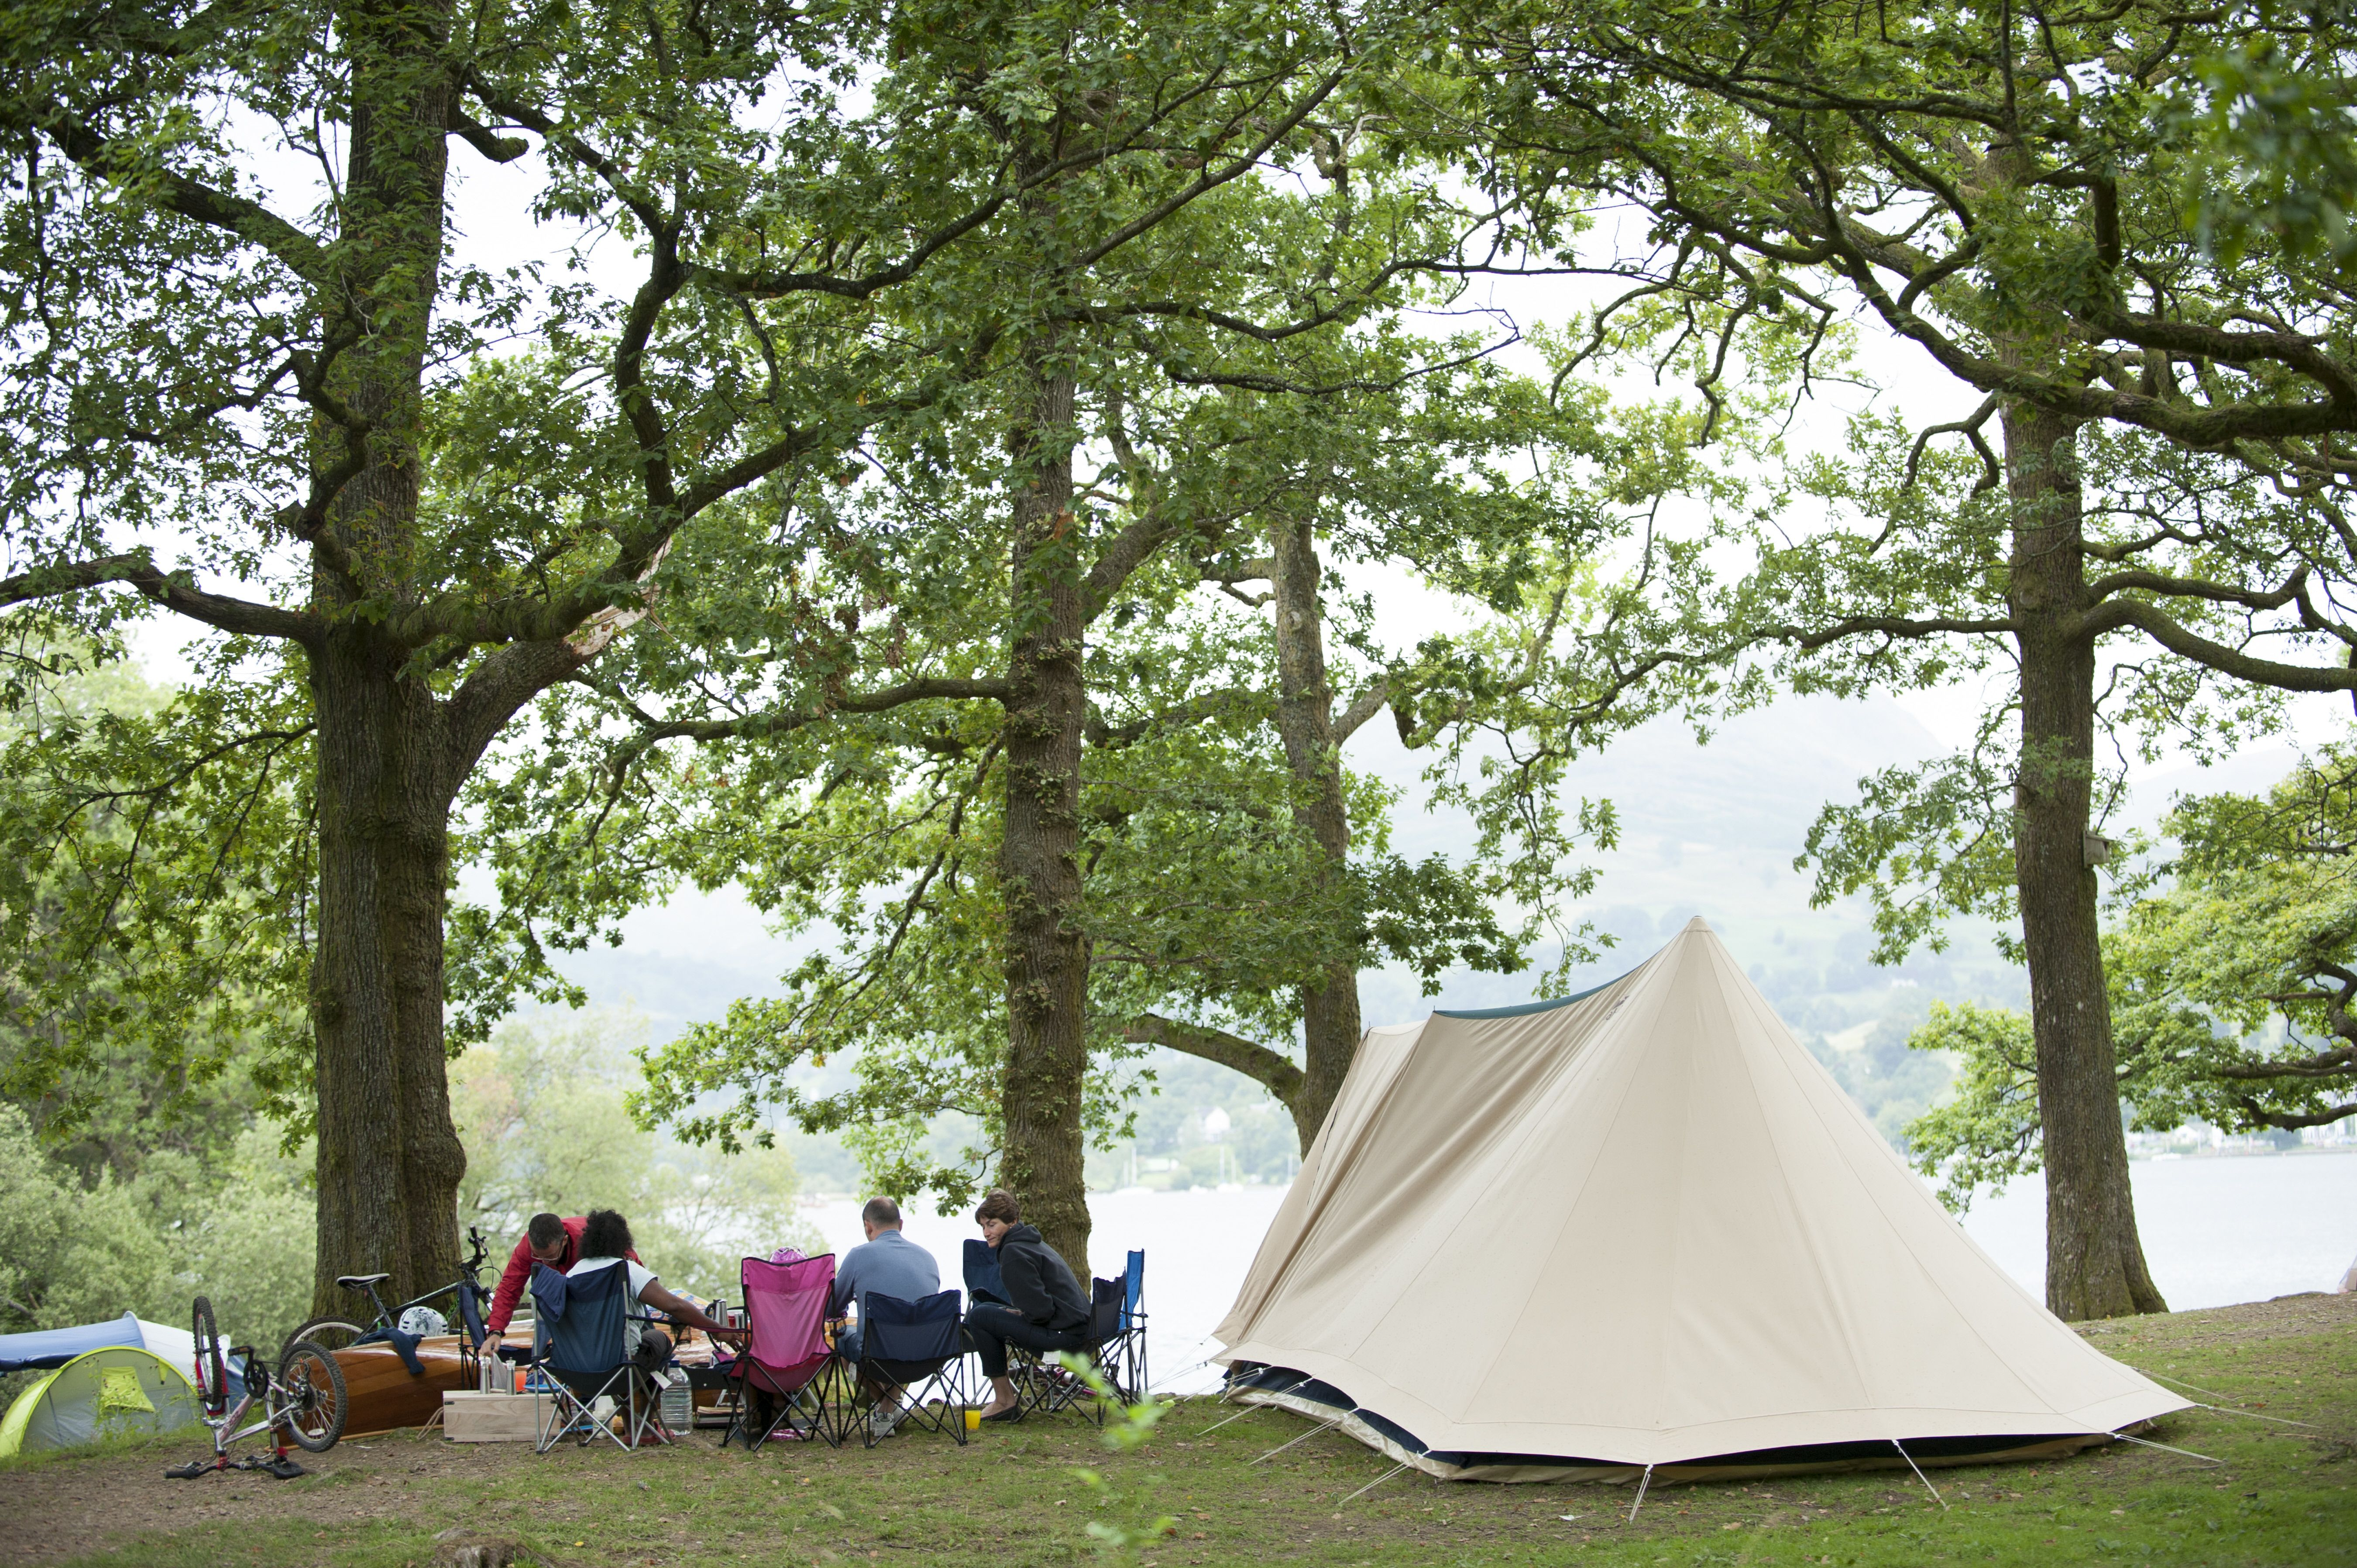 For 'one night only' on Saturday 16th July 2016, camp at ...